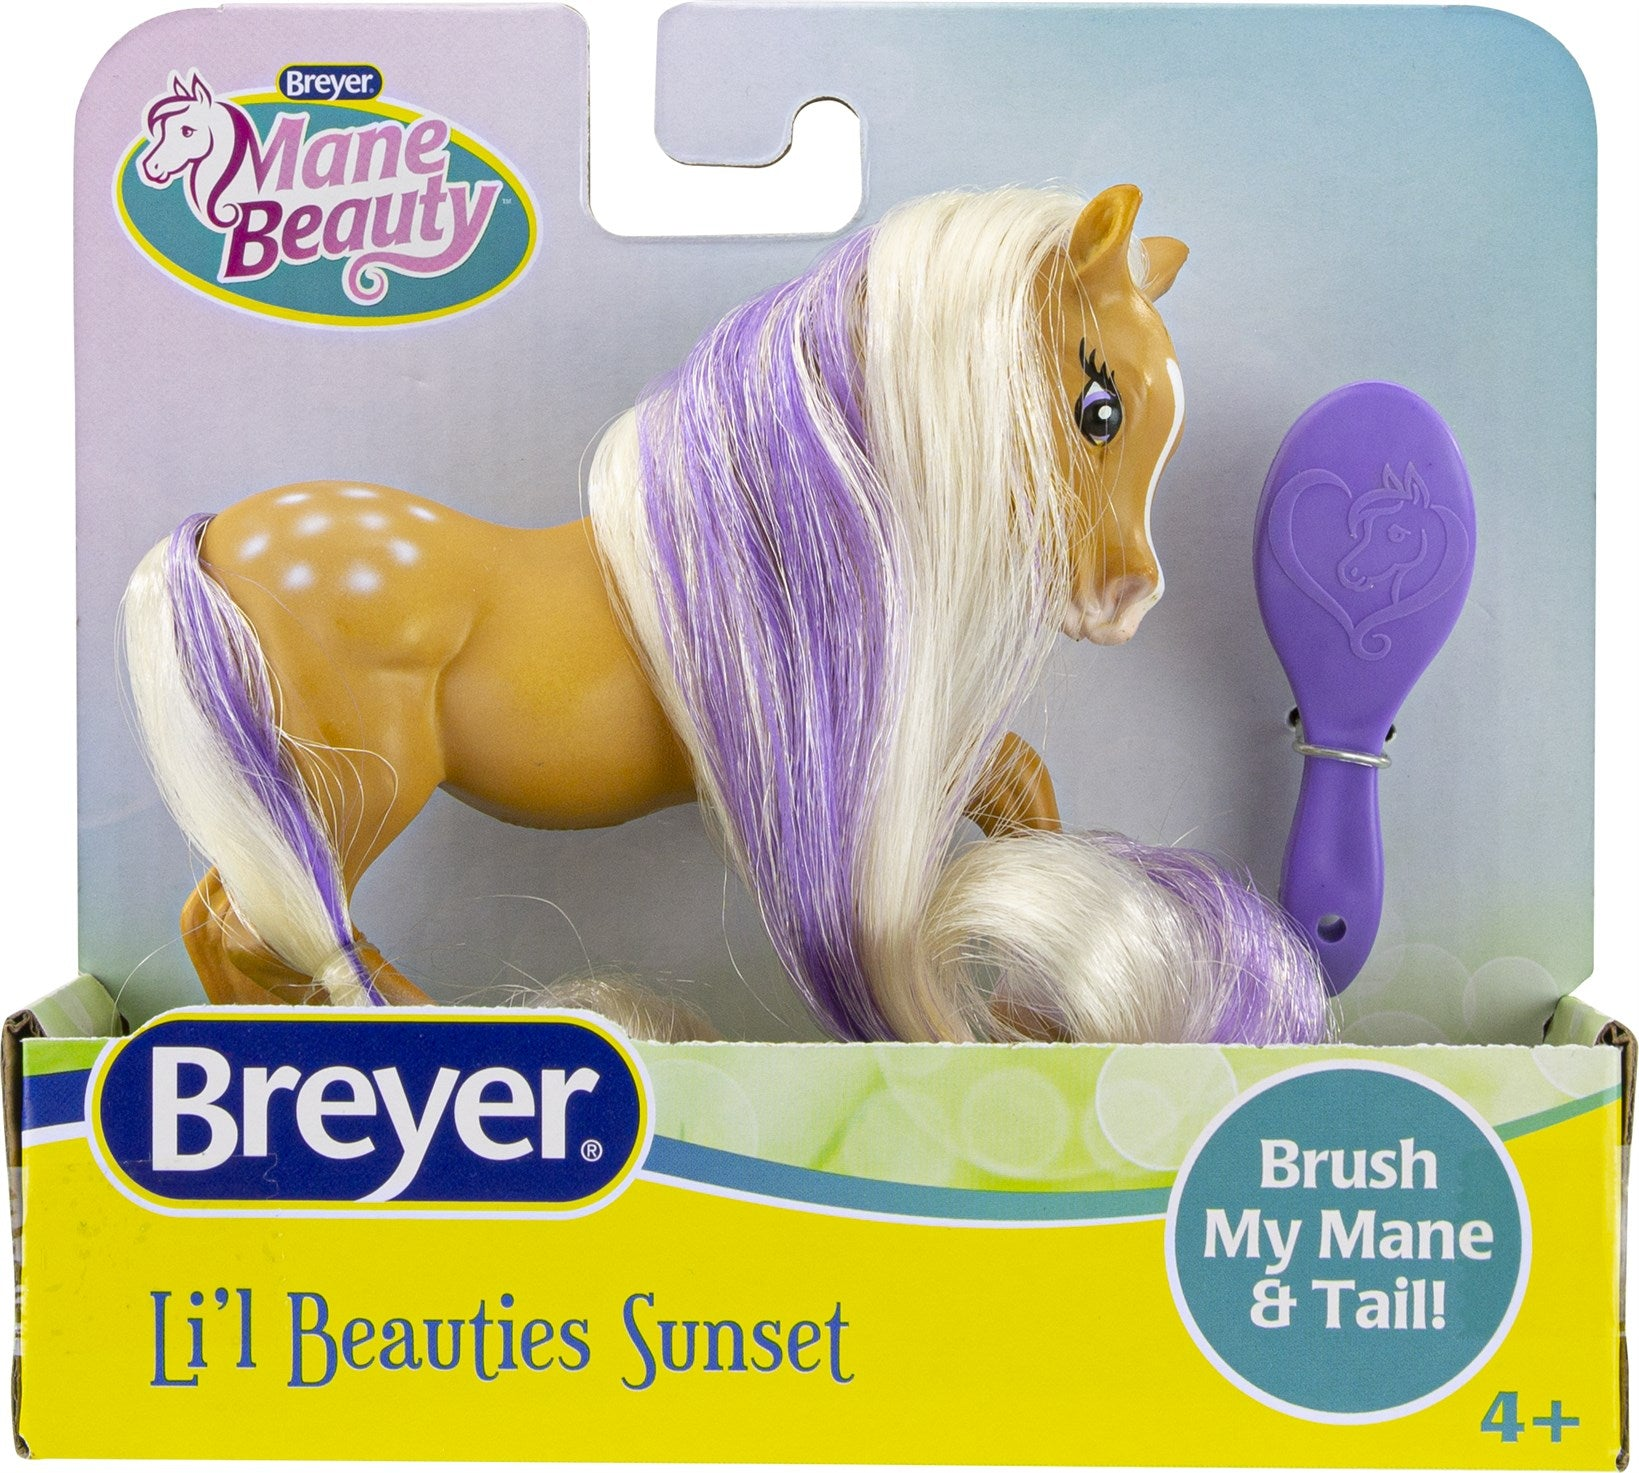 Breyer Mane Beauty Li'l Beauties Sunset